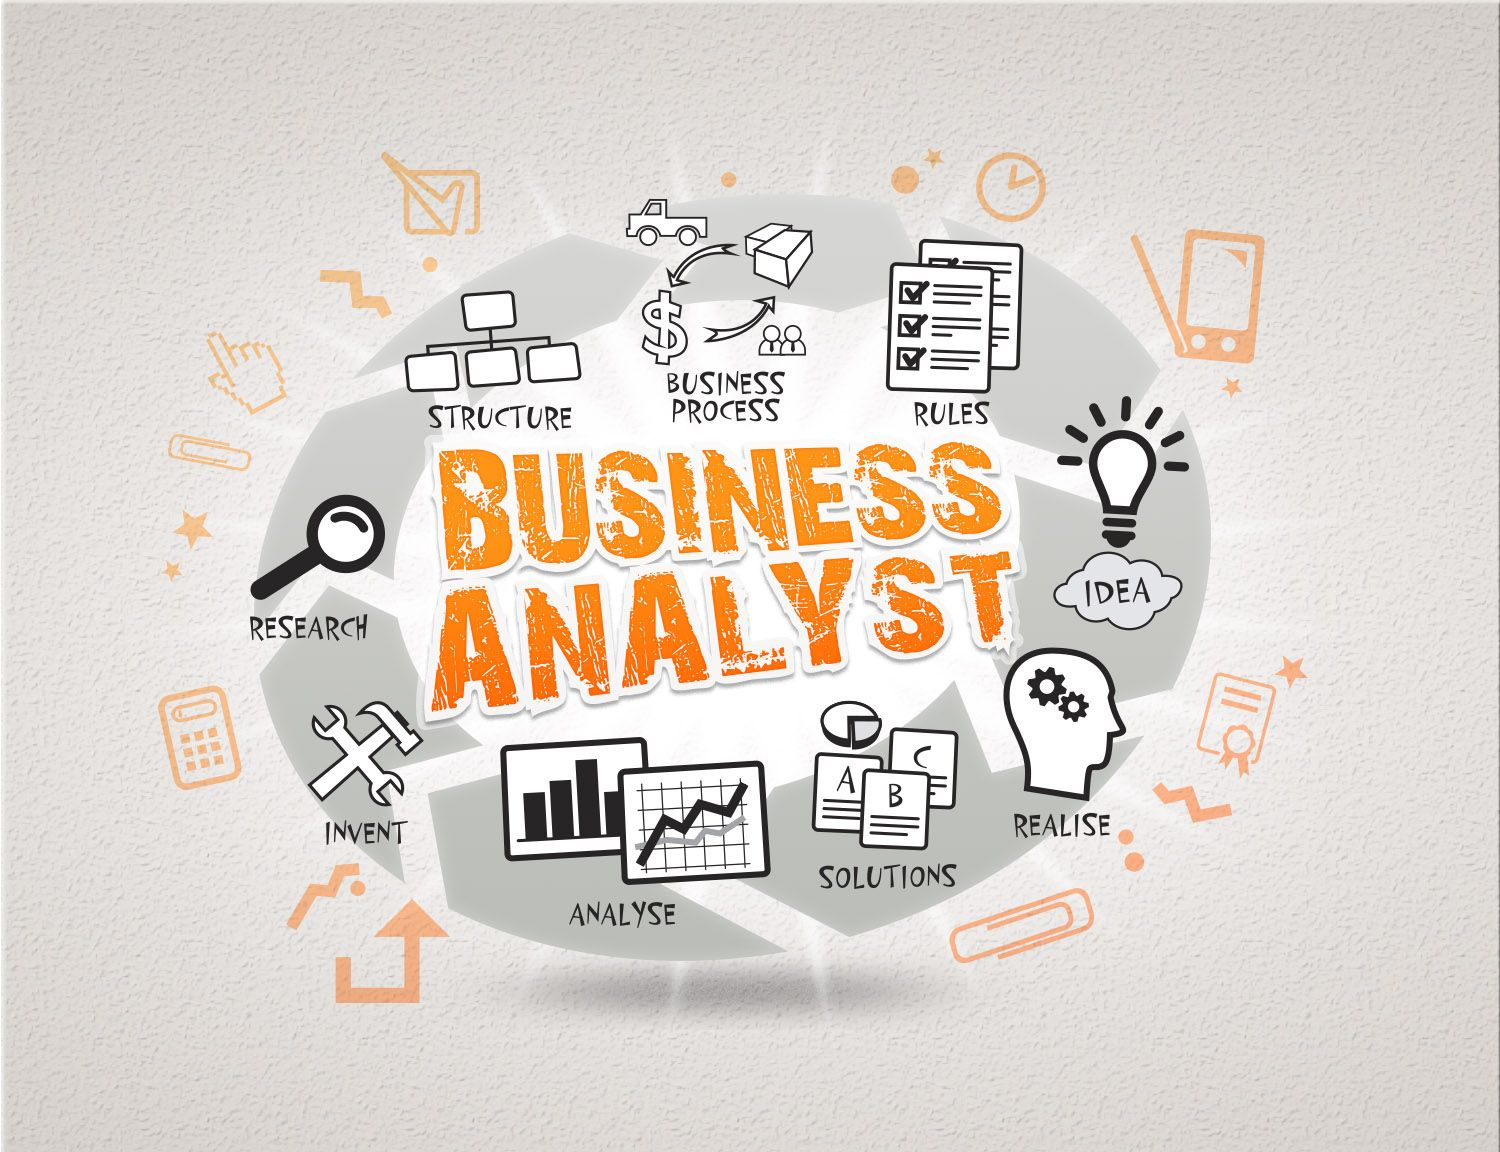 BusinessAnalysisConsulting  ThatS Just The Job  Work